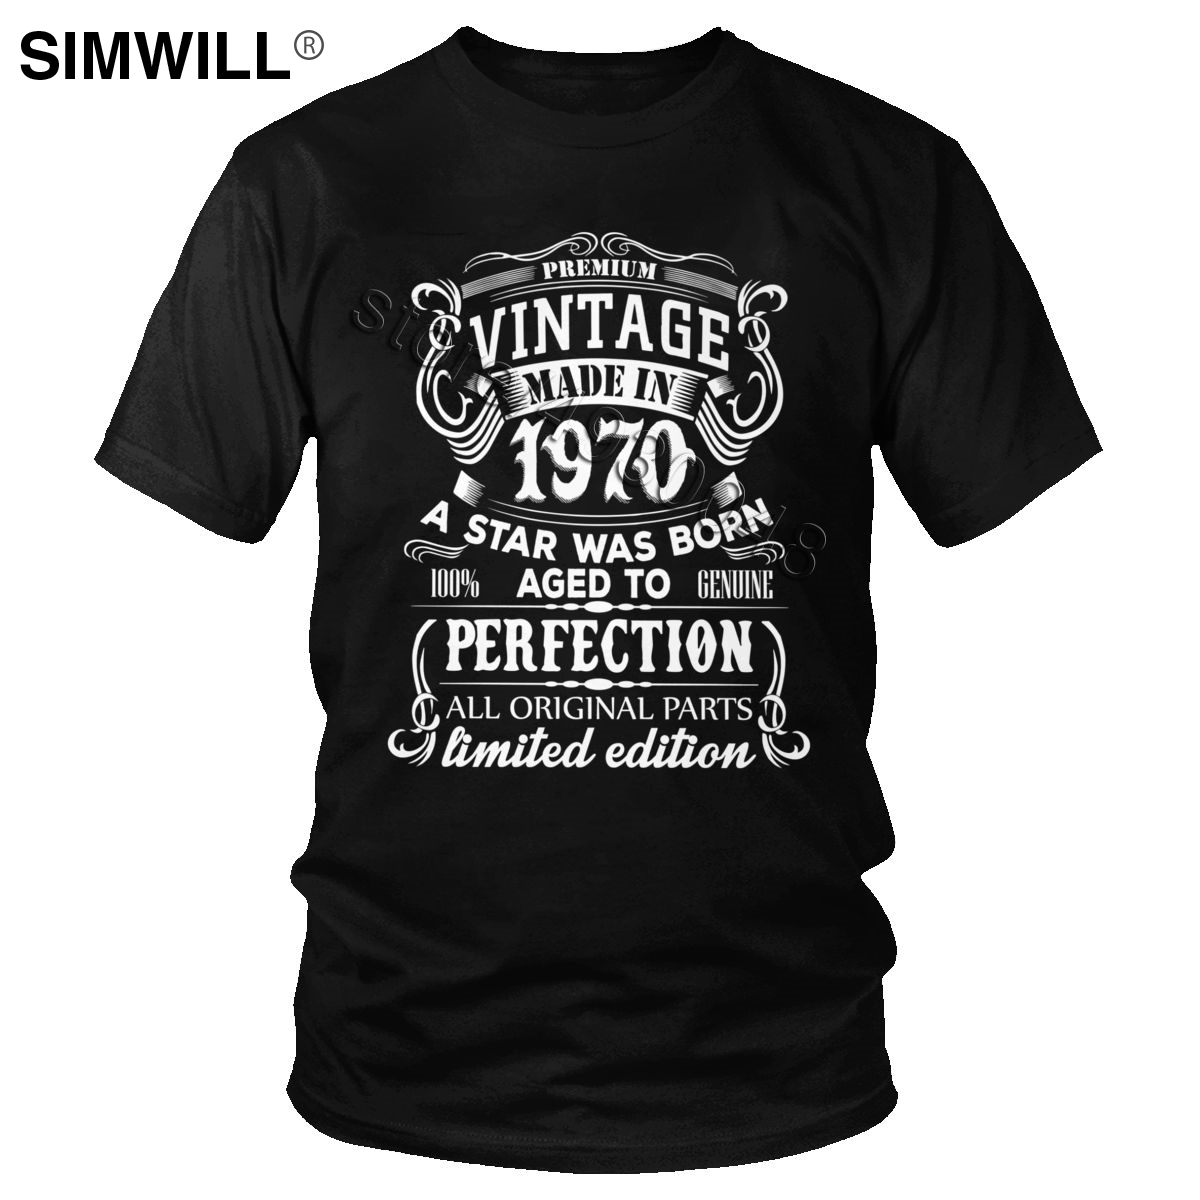 <font><b>Vintage</b></font> Made In <font><b>1970</b></font> 50 Years Old T Shirt Men 100% Cotton T-Shirt Short Sleeve 50th Birthday Gift Tee Born In <font><b>1970</b></font> Tshirt Tops image